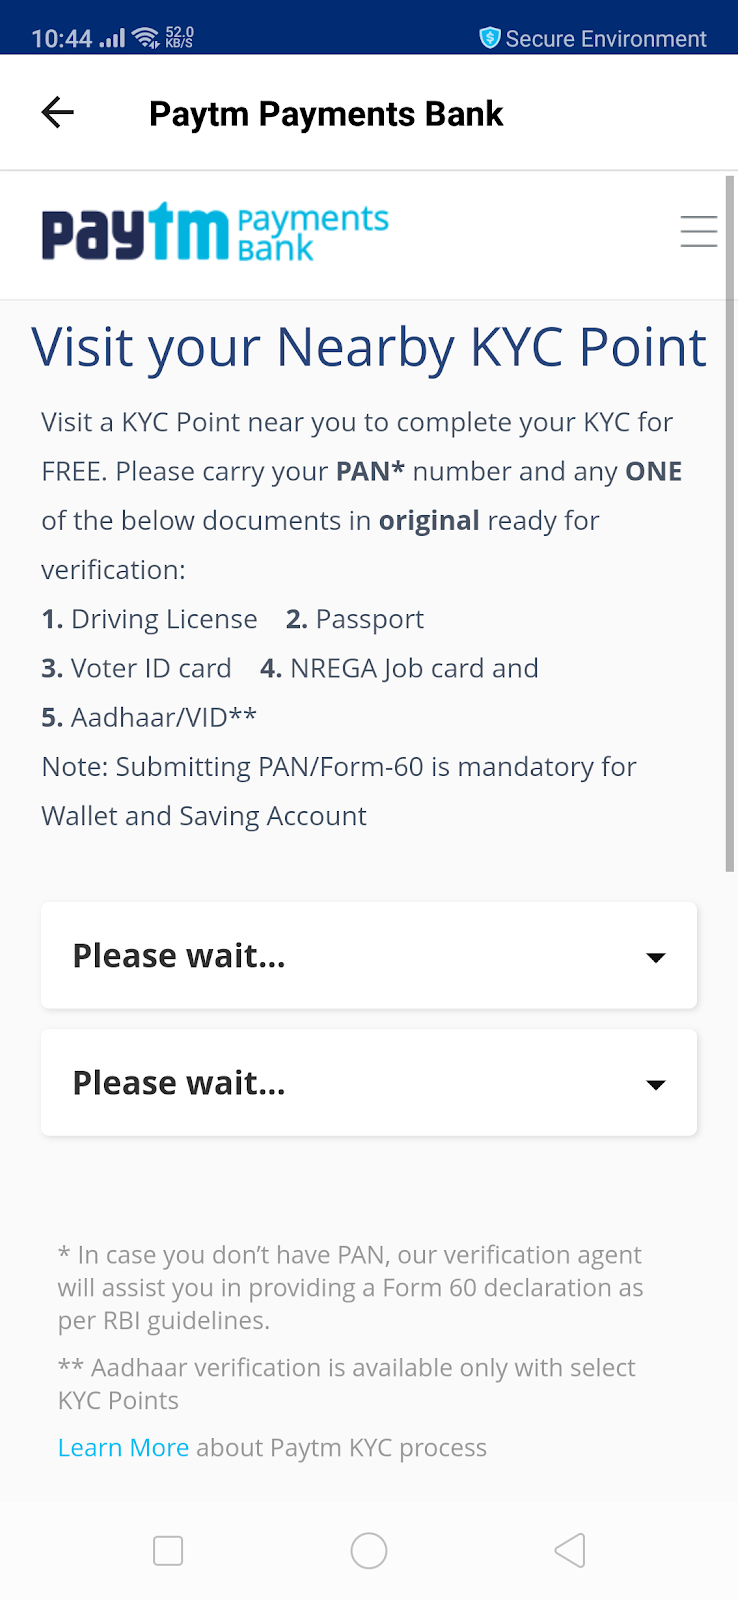 how to complete paytm kyc with aadhar online in hindi - MJLINK